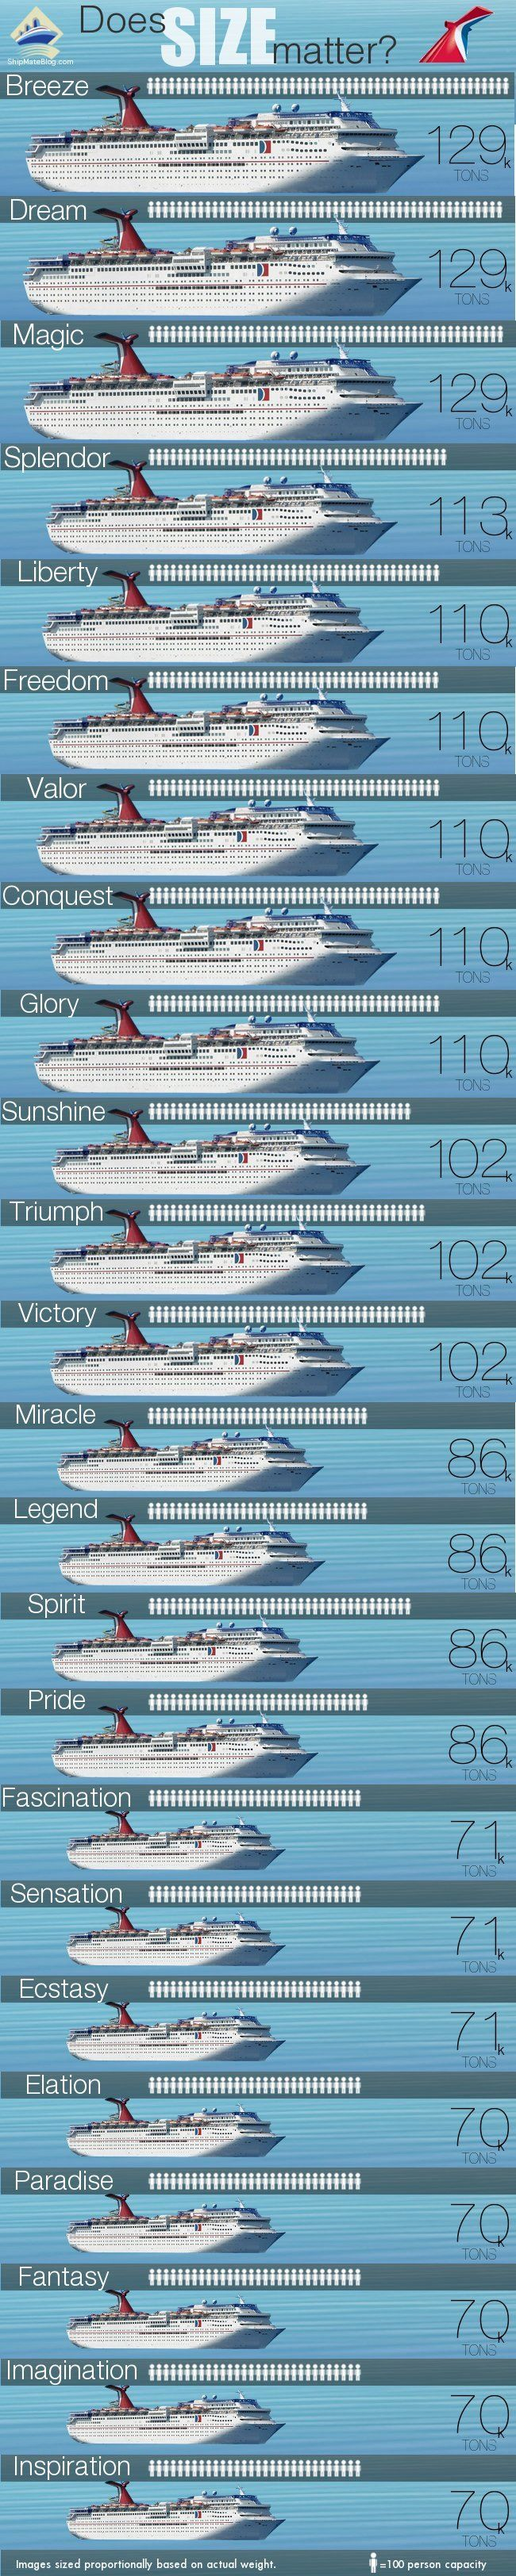 Which Carnival Cruise Lines ship is your favorite?